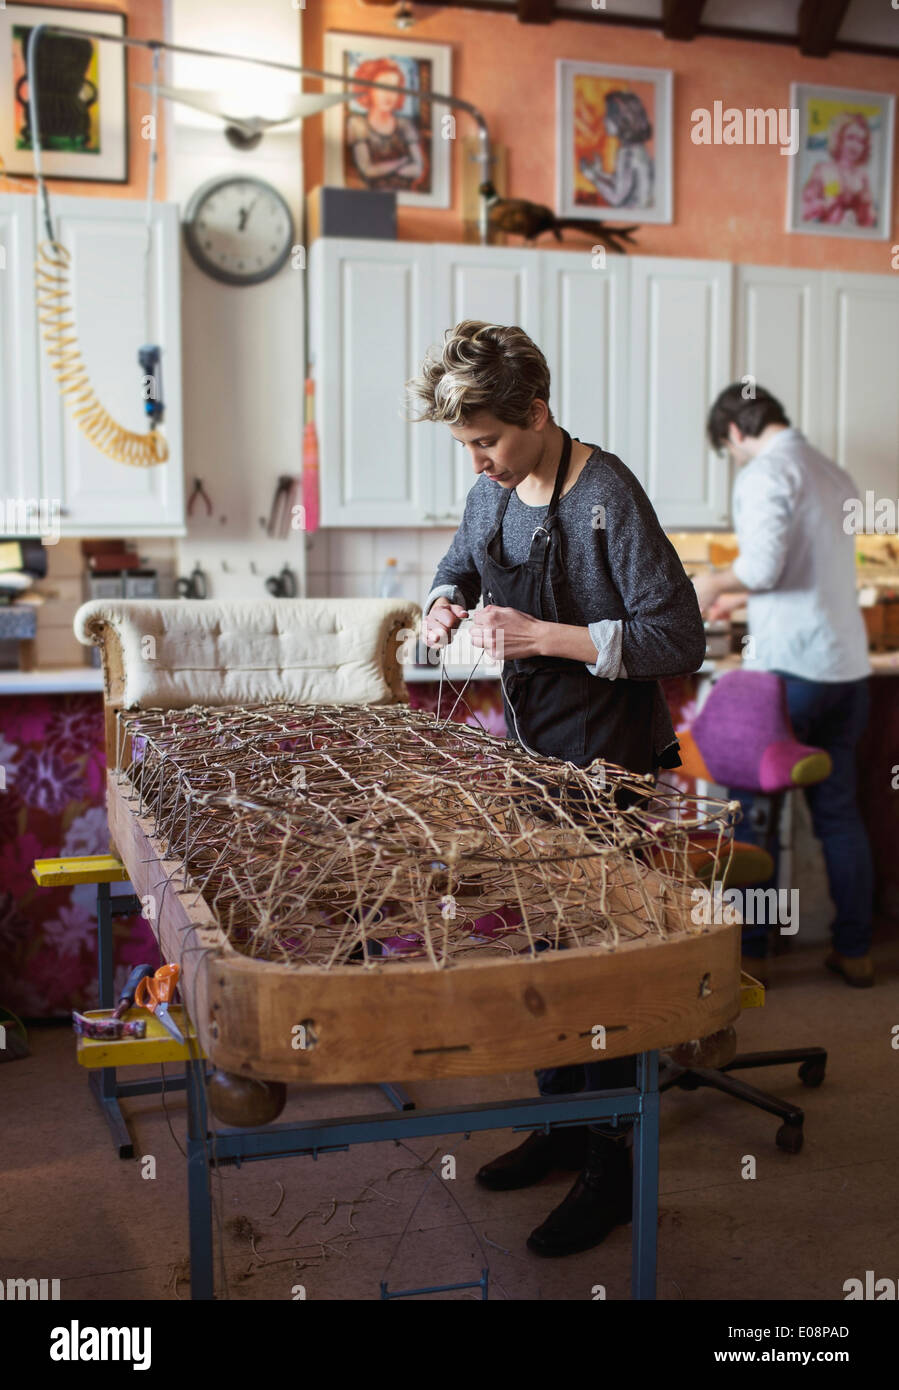 Female worker fixing rope on chaise longue at workshop - Stock Image